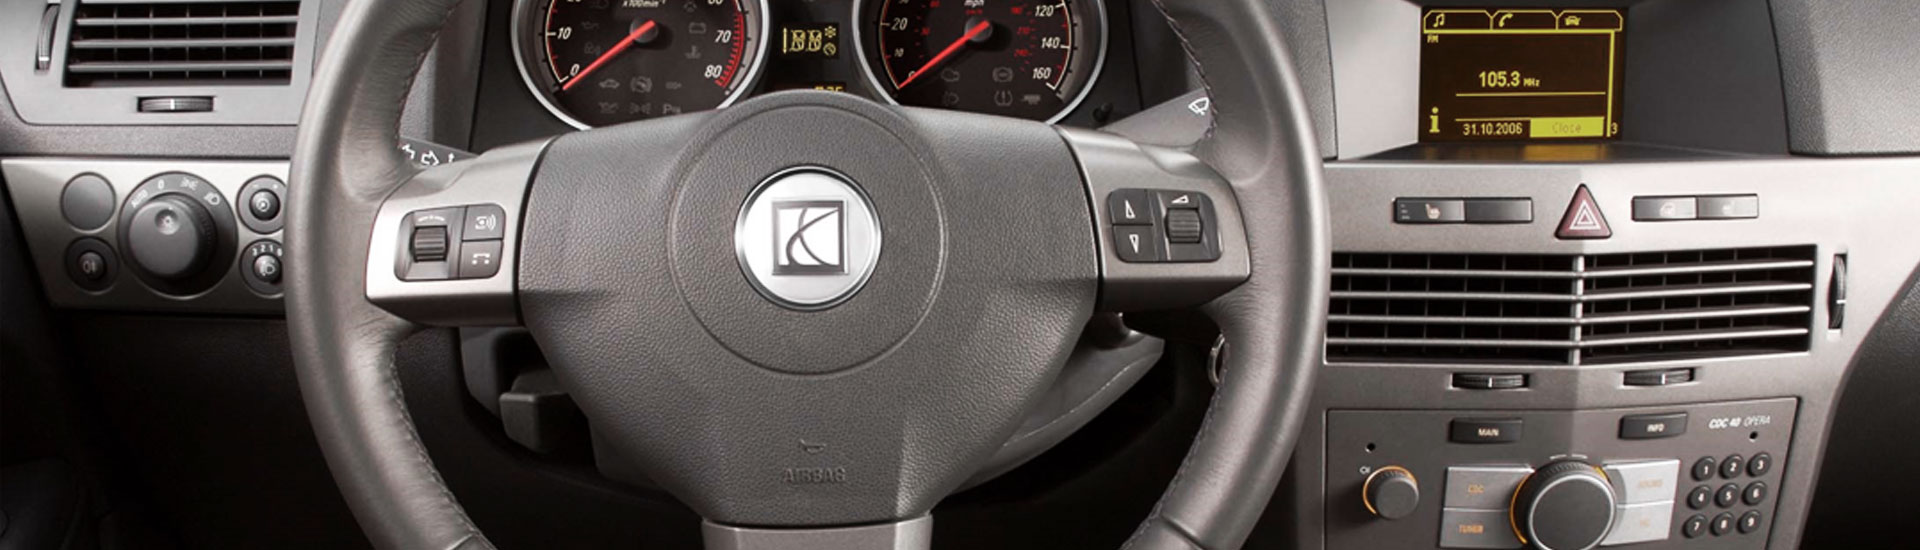 Saturn Astra Custom Dash Kits